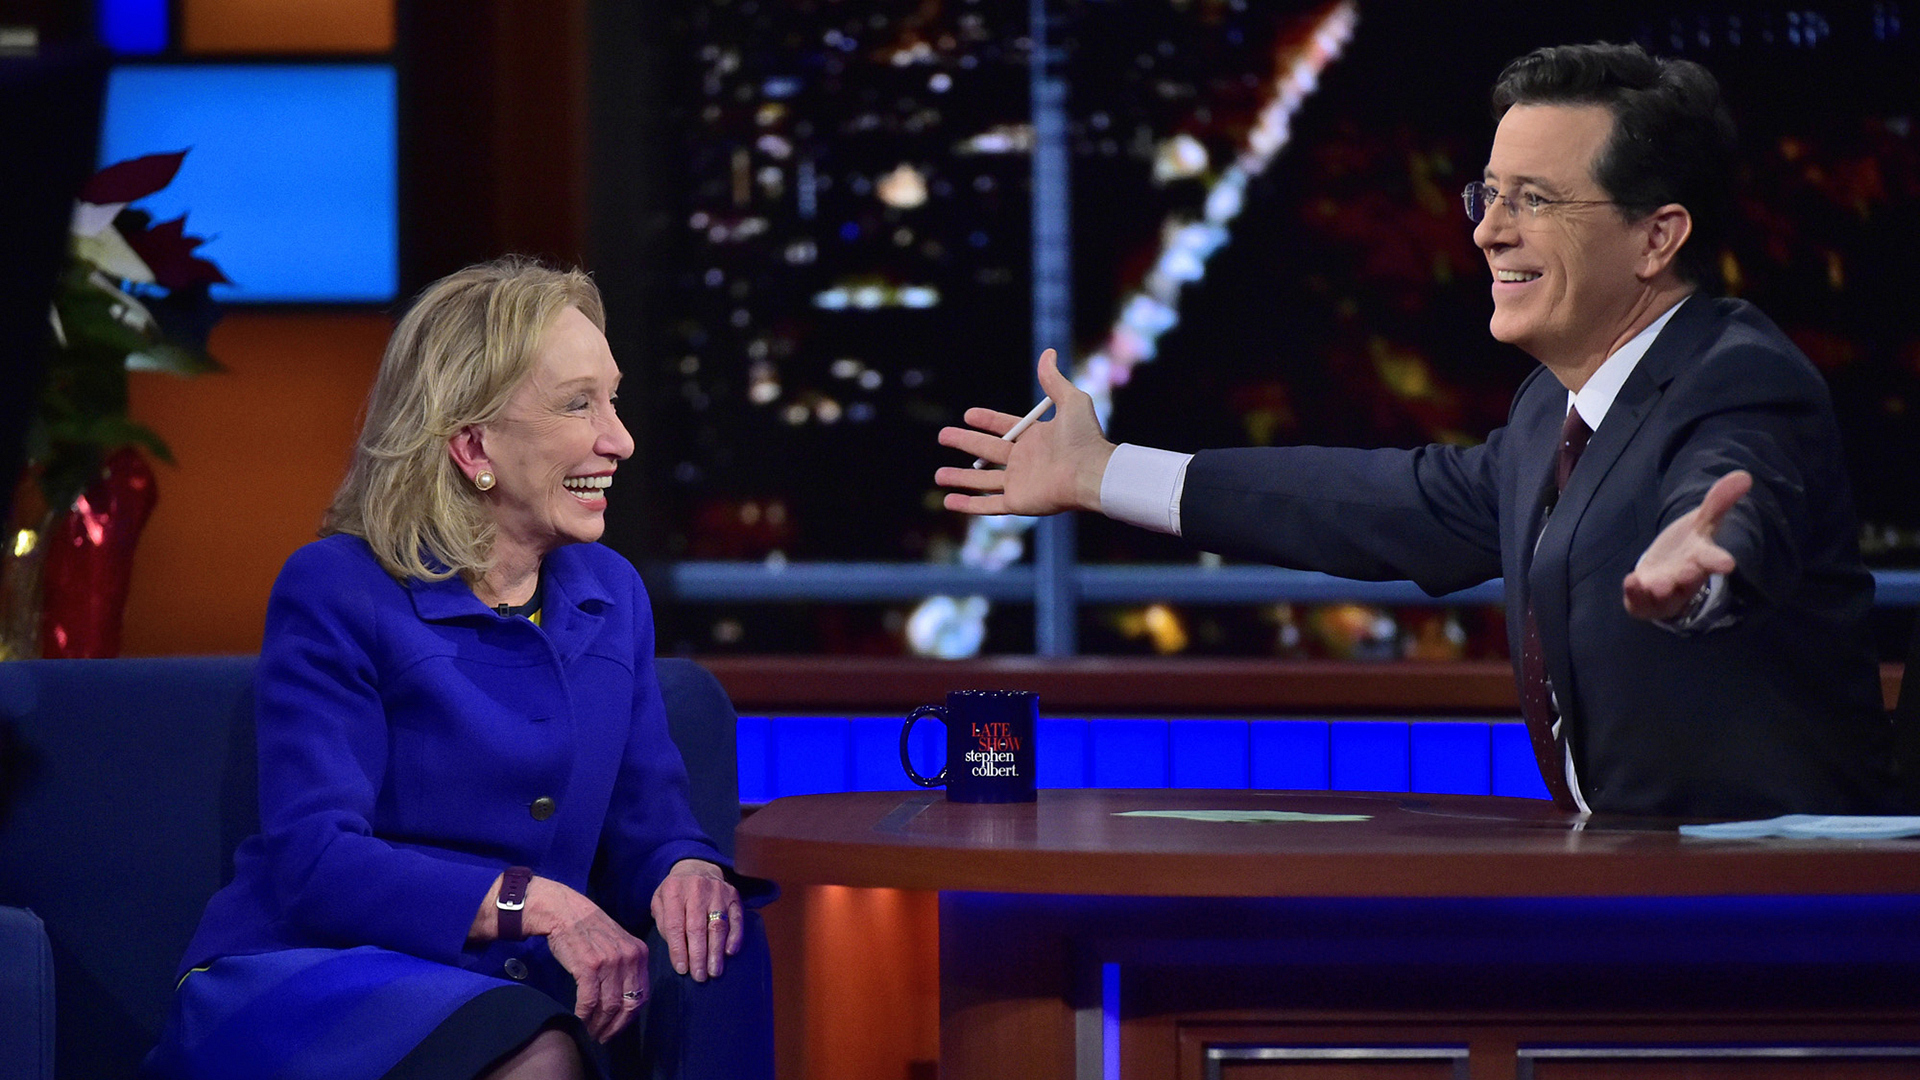 Doris Kearns Goodwin and Stephen Colbert